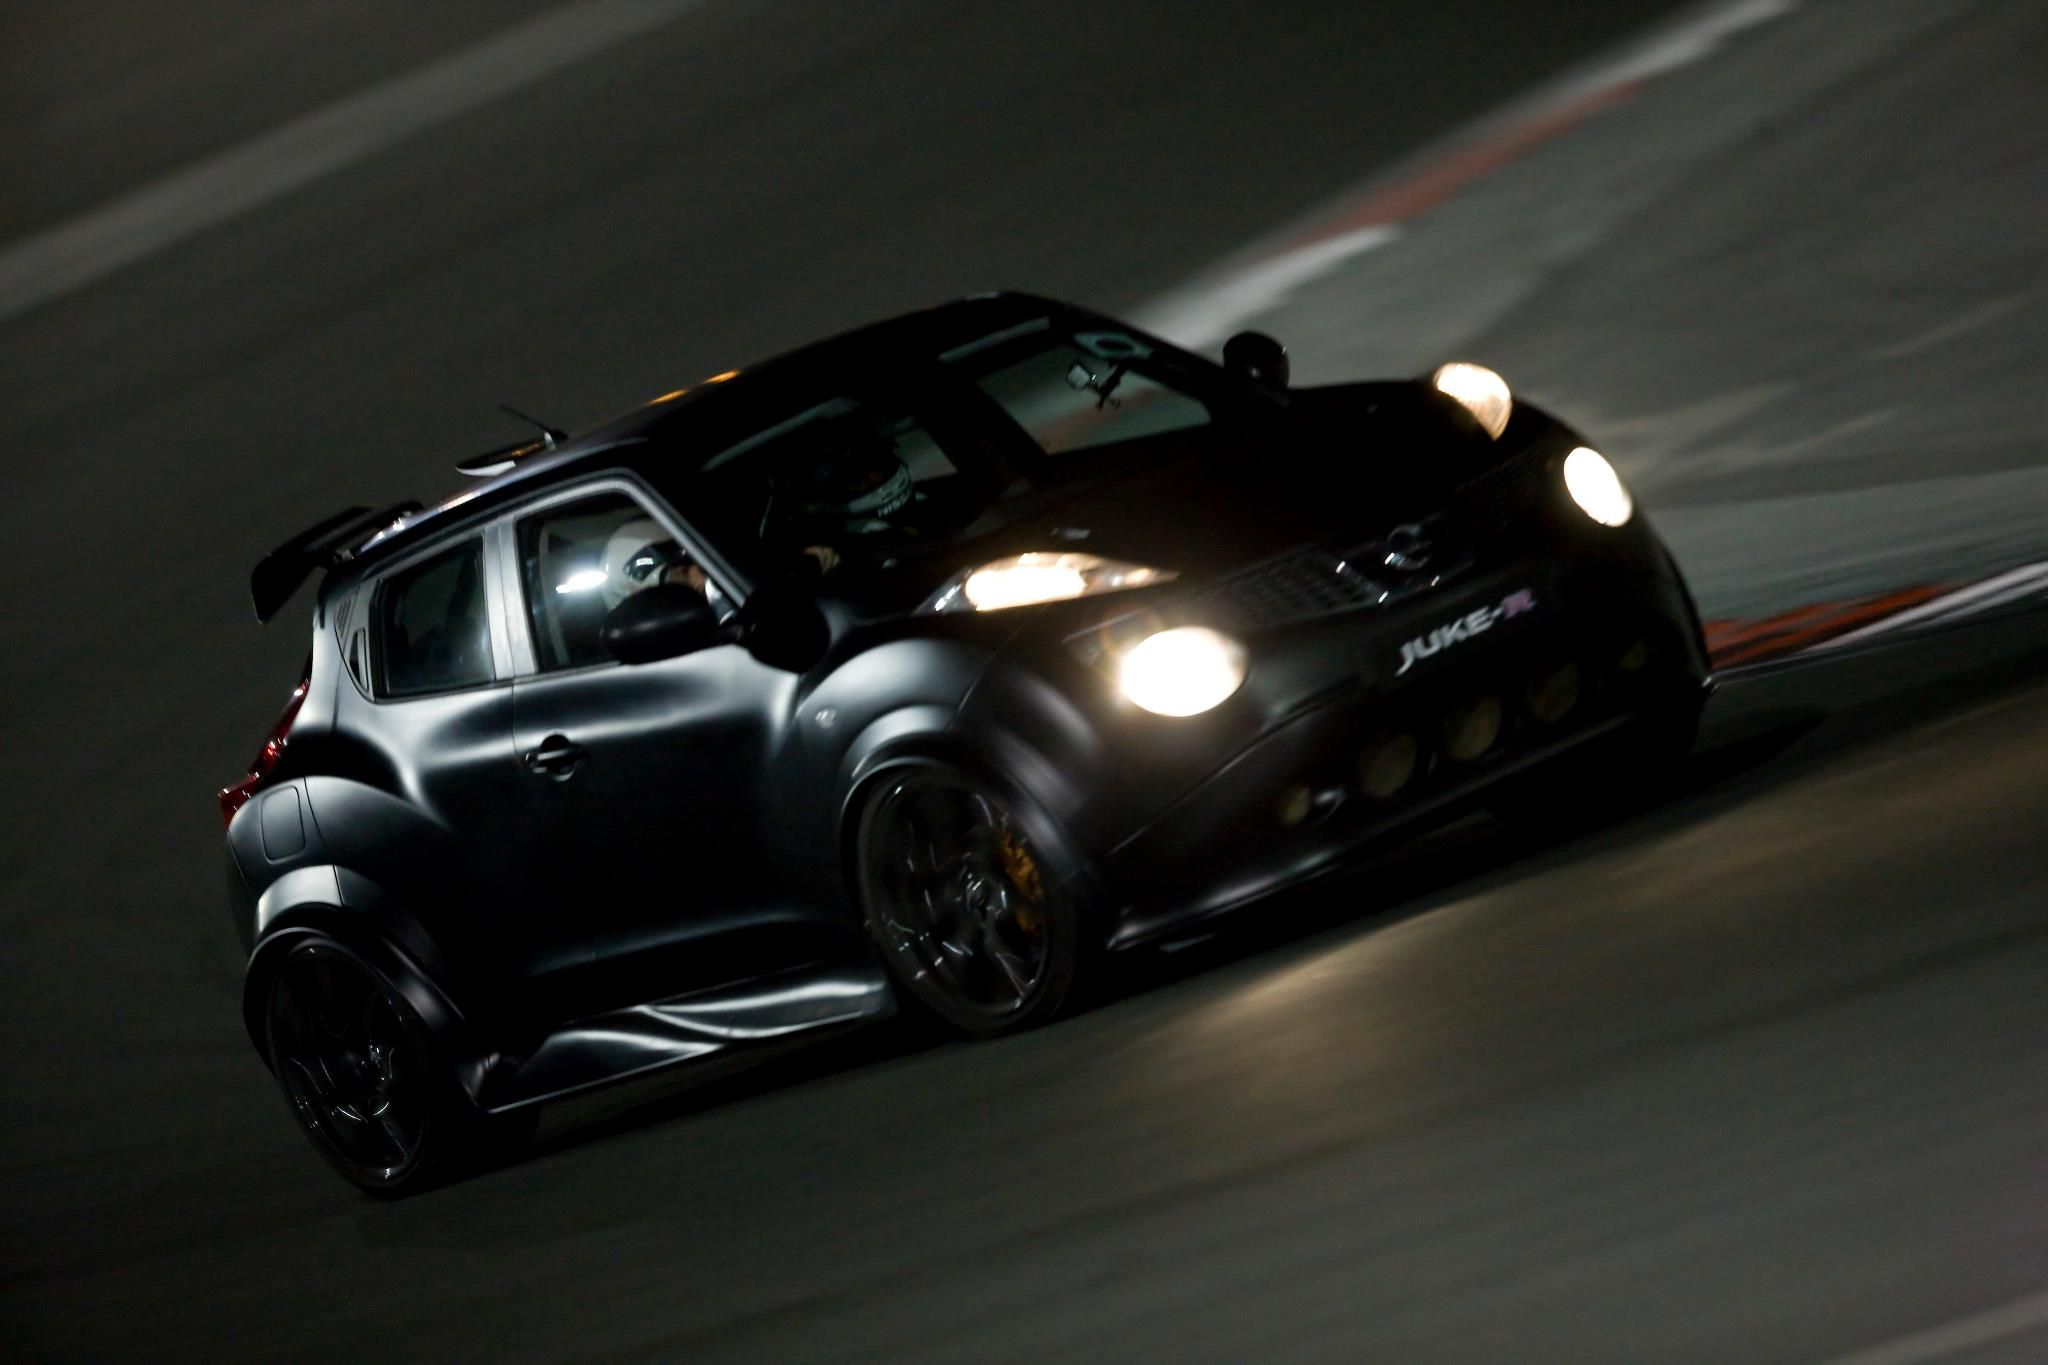 ce266a3e1593ce6a09ad8e9311301cc6 Take A Look About Nissan Juke Custom with Fabulous Photos Cars Review